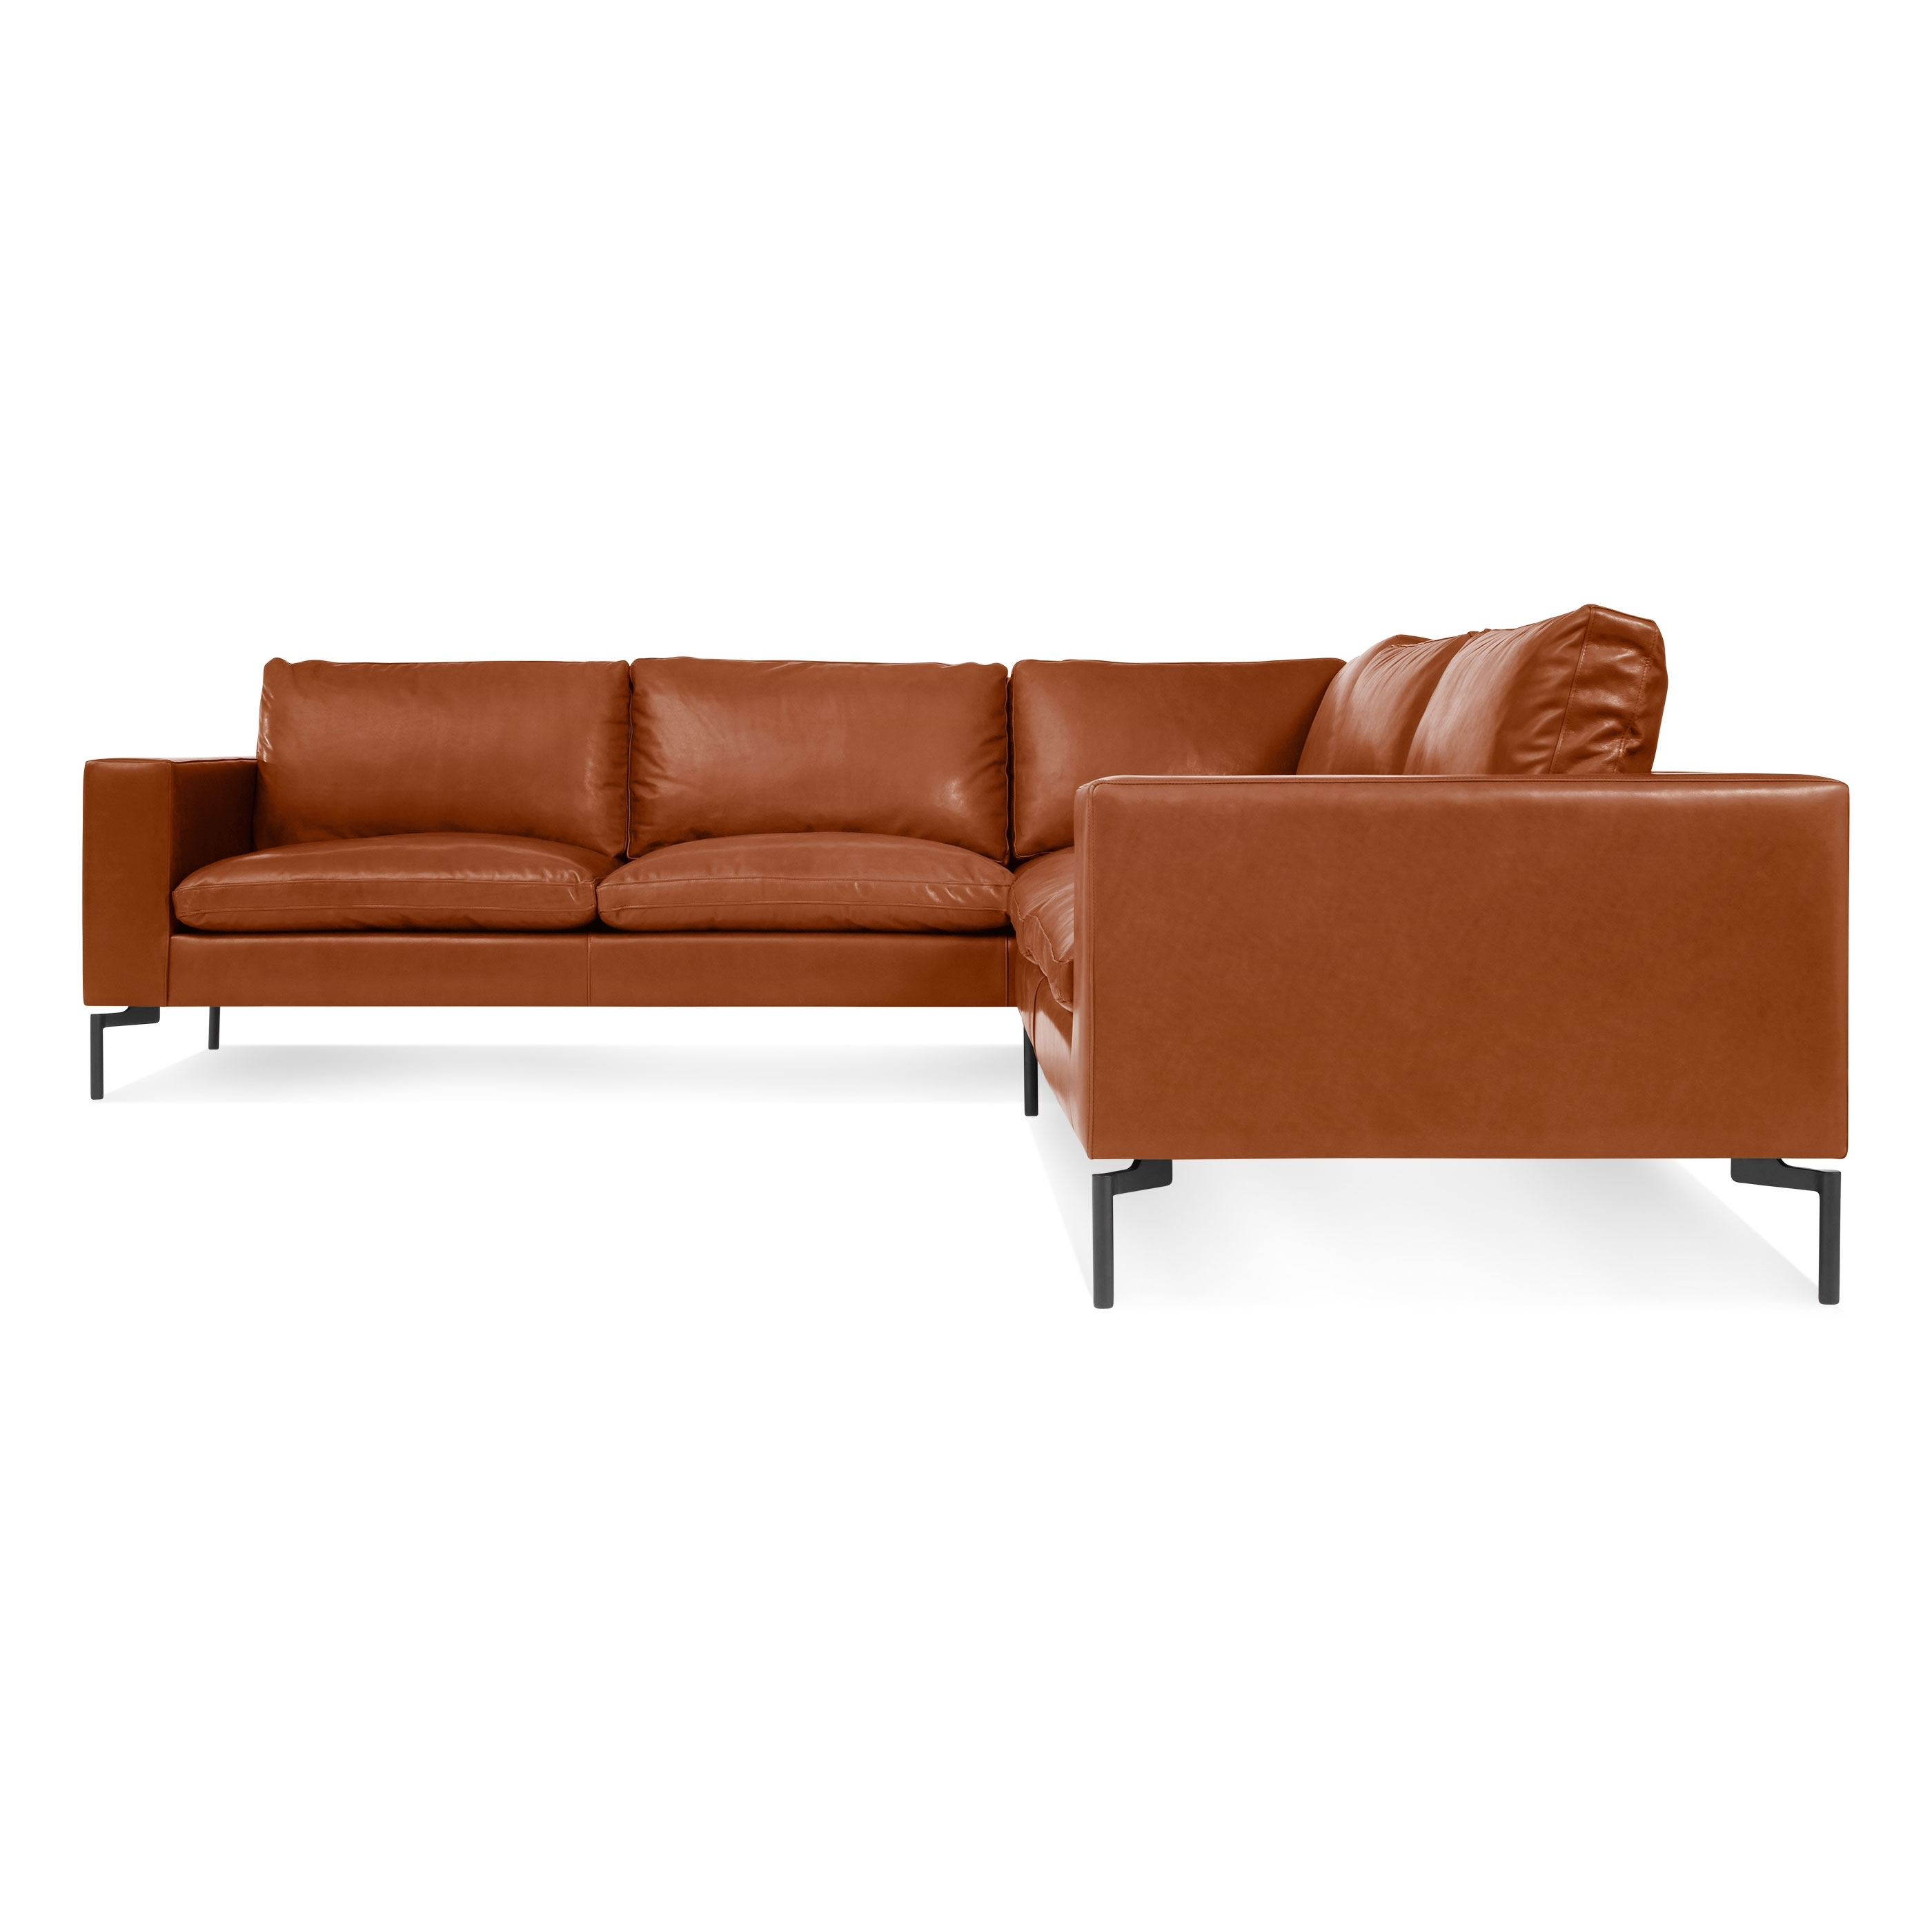 Blu Dot With Regard To Most Recently Released Newfoundland Sectional Sofas (View 3 of 15)